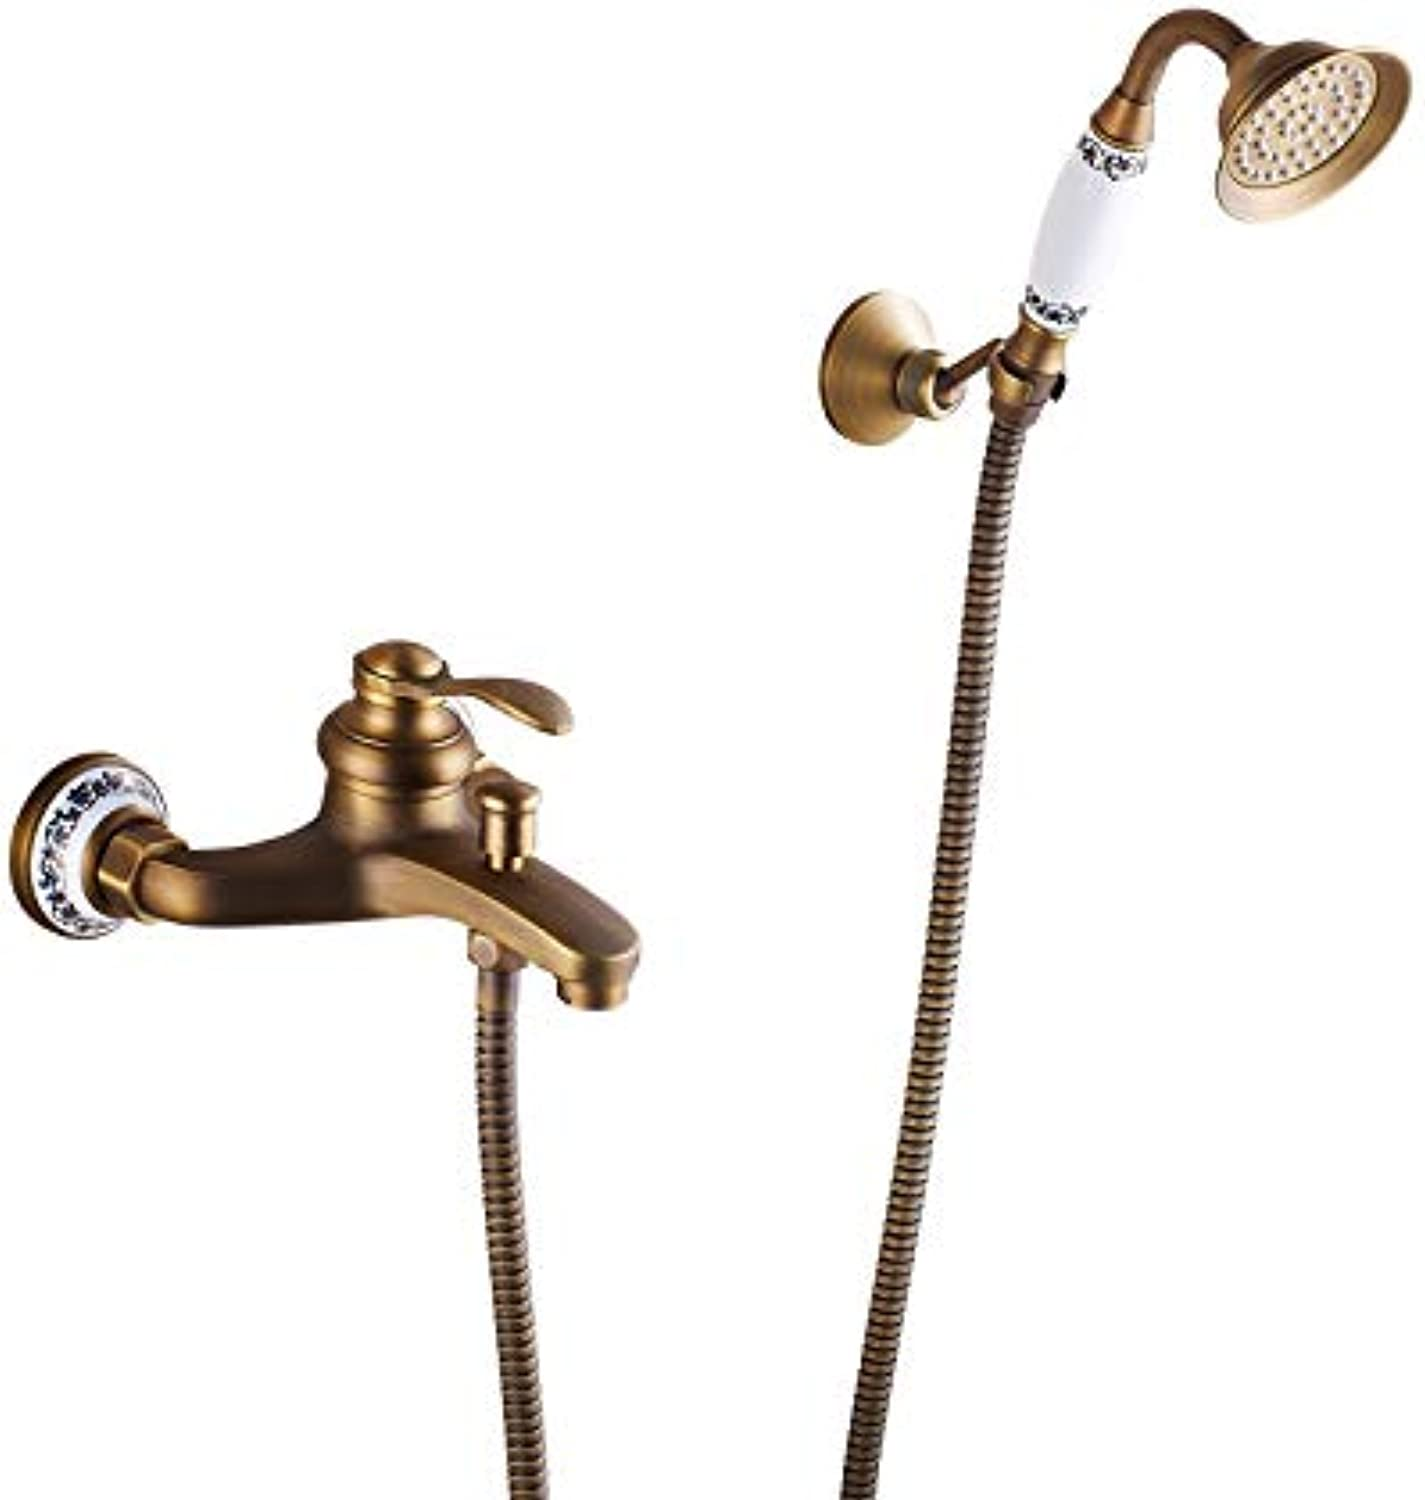 Modern Shower Set, Simple Wall-Mounted Hot and Cold Shower, Hand Shower Head